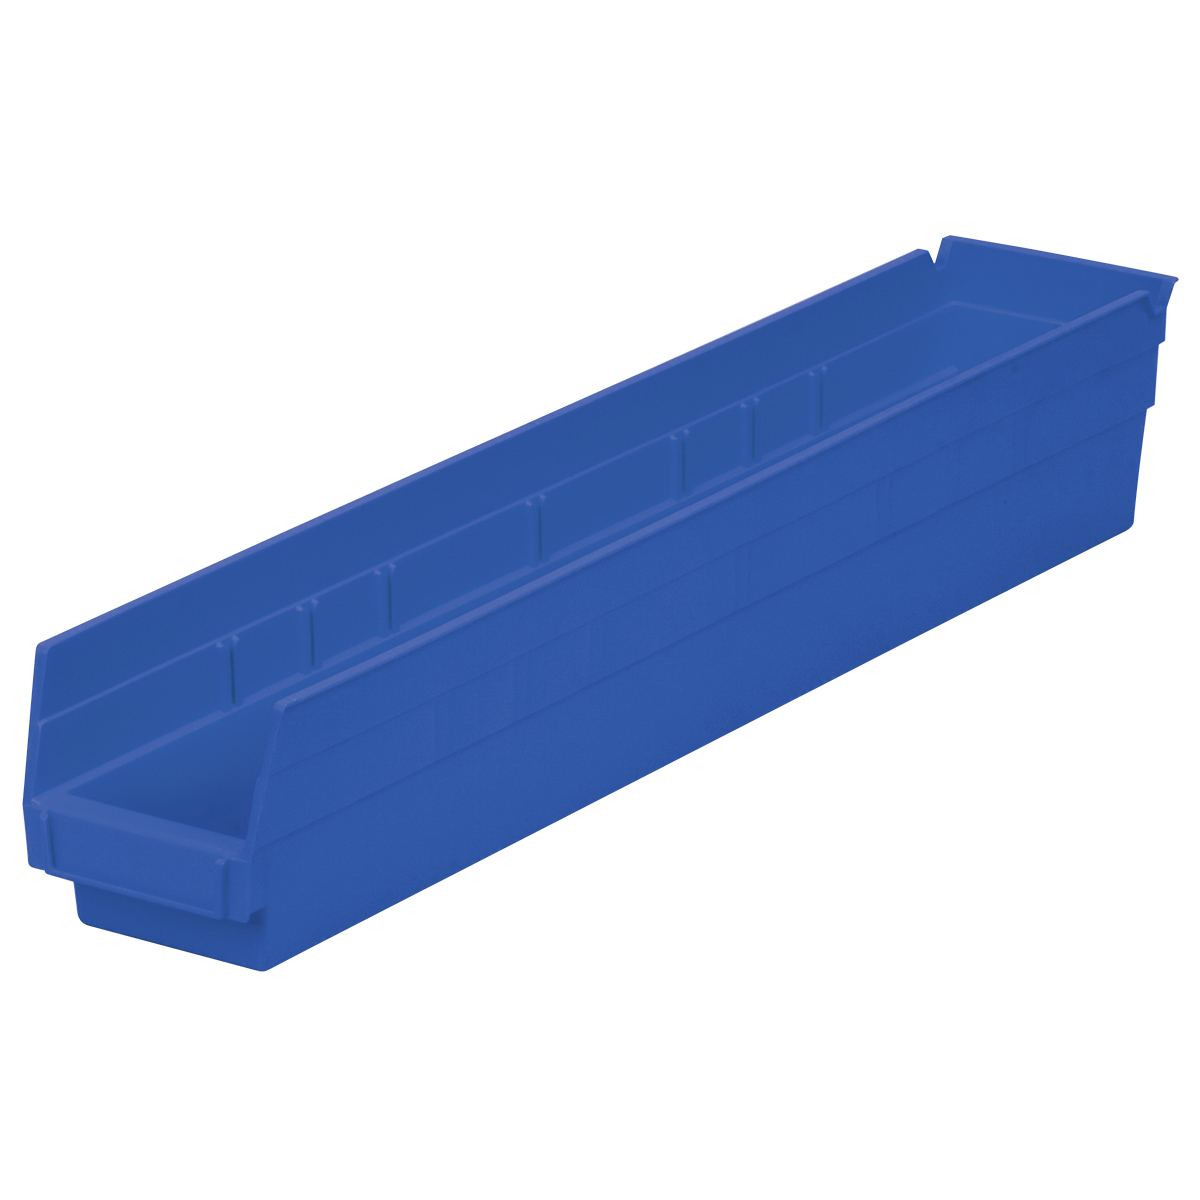 Shelf Bin 23-5/8 x 4-1/8 x 4, Blue (30124BLUE).  This item sold in carton quantities of 12.